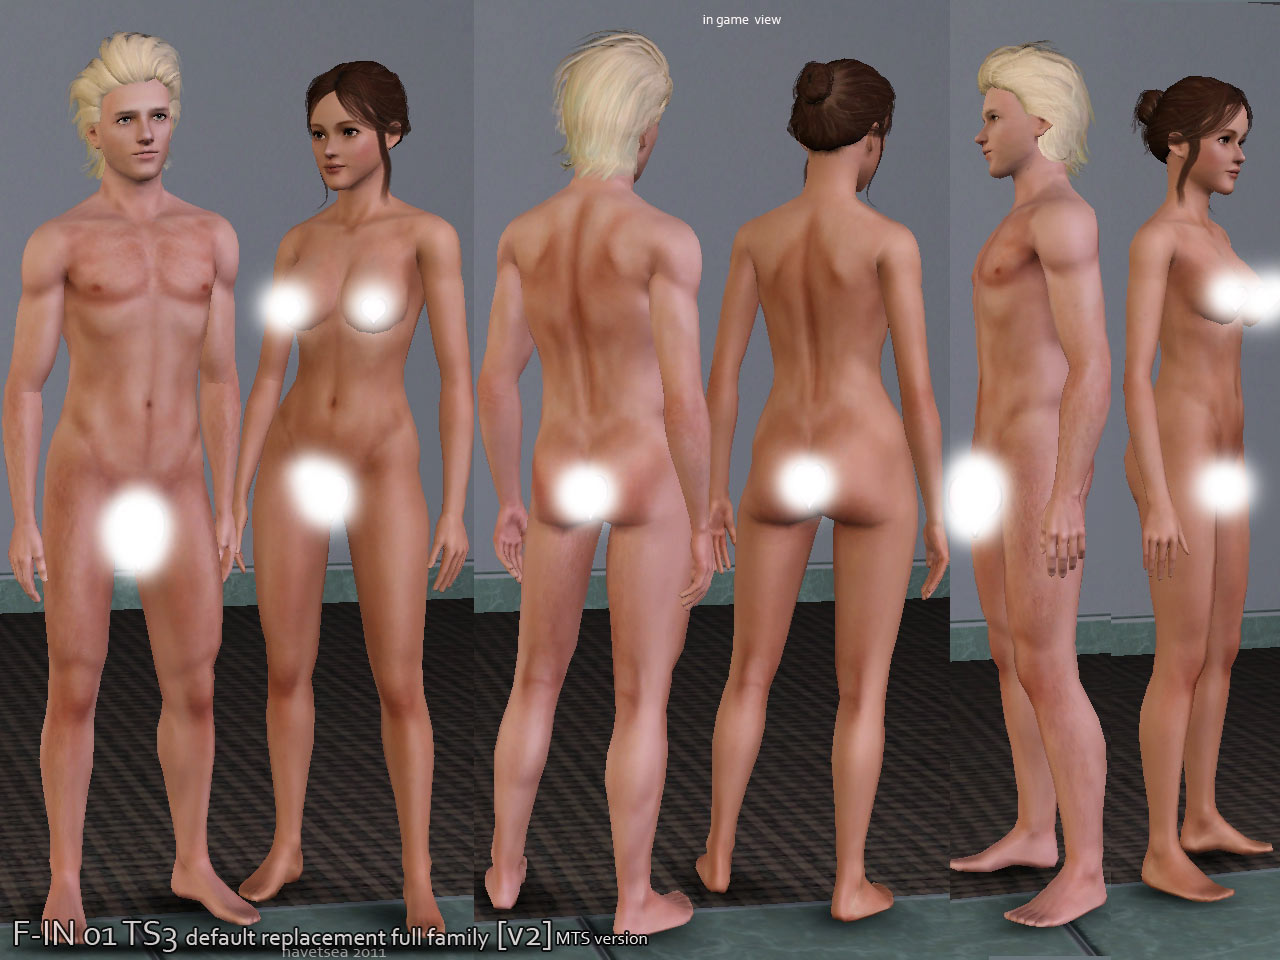 The sims 2 male nude skins naked photo